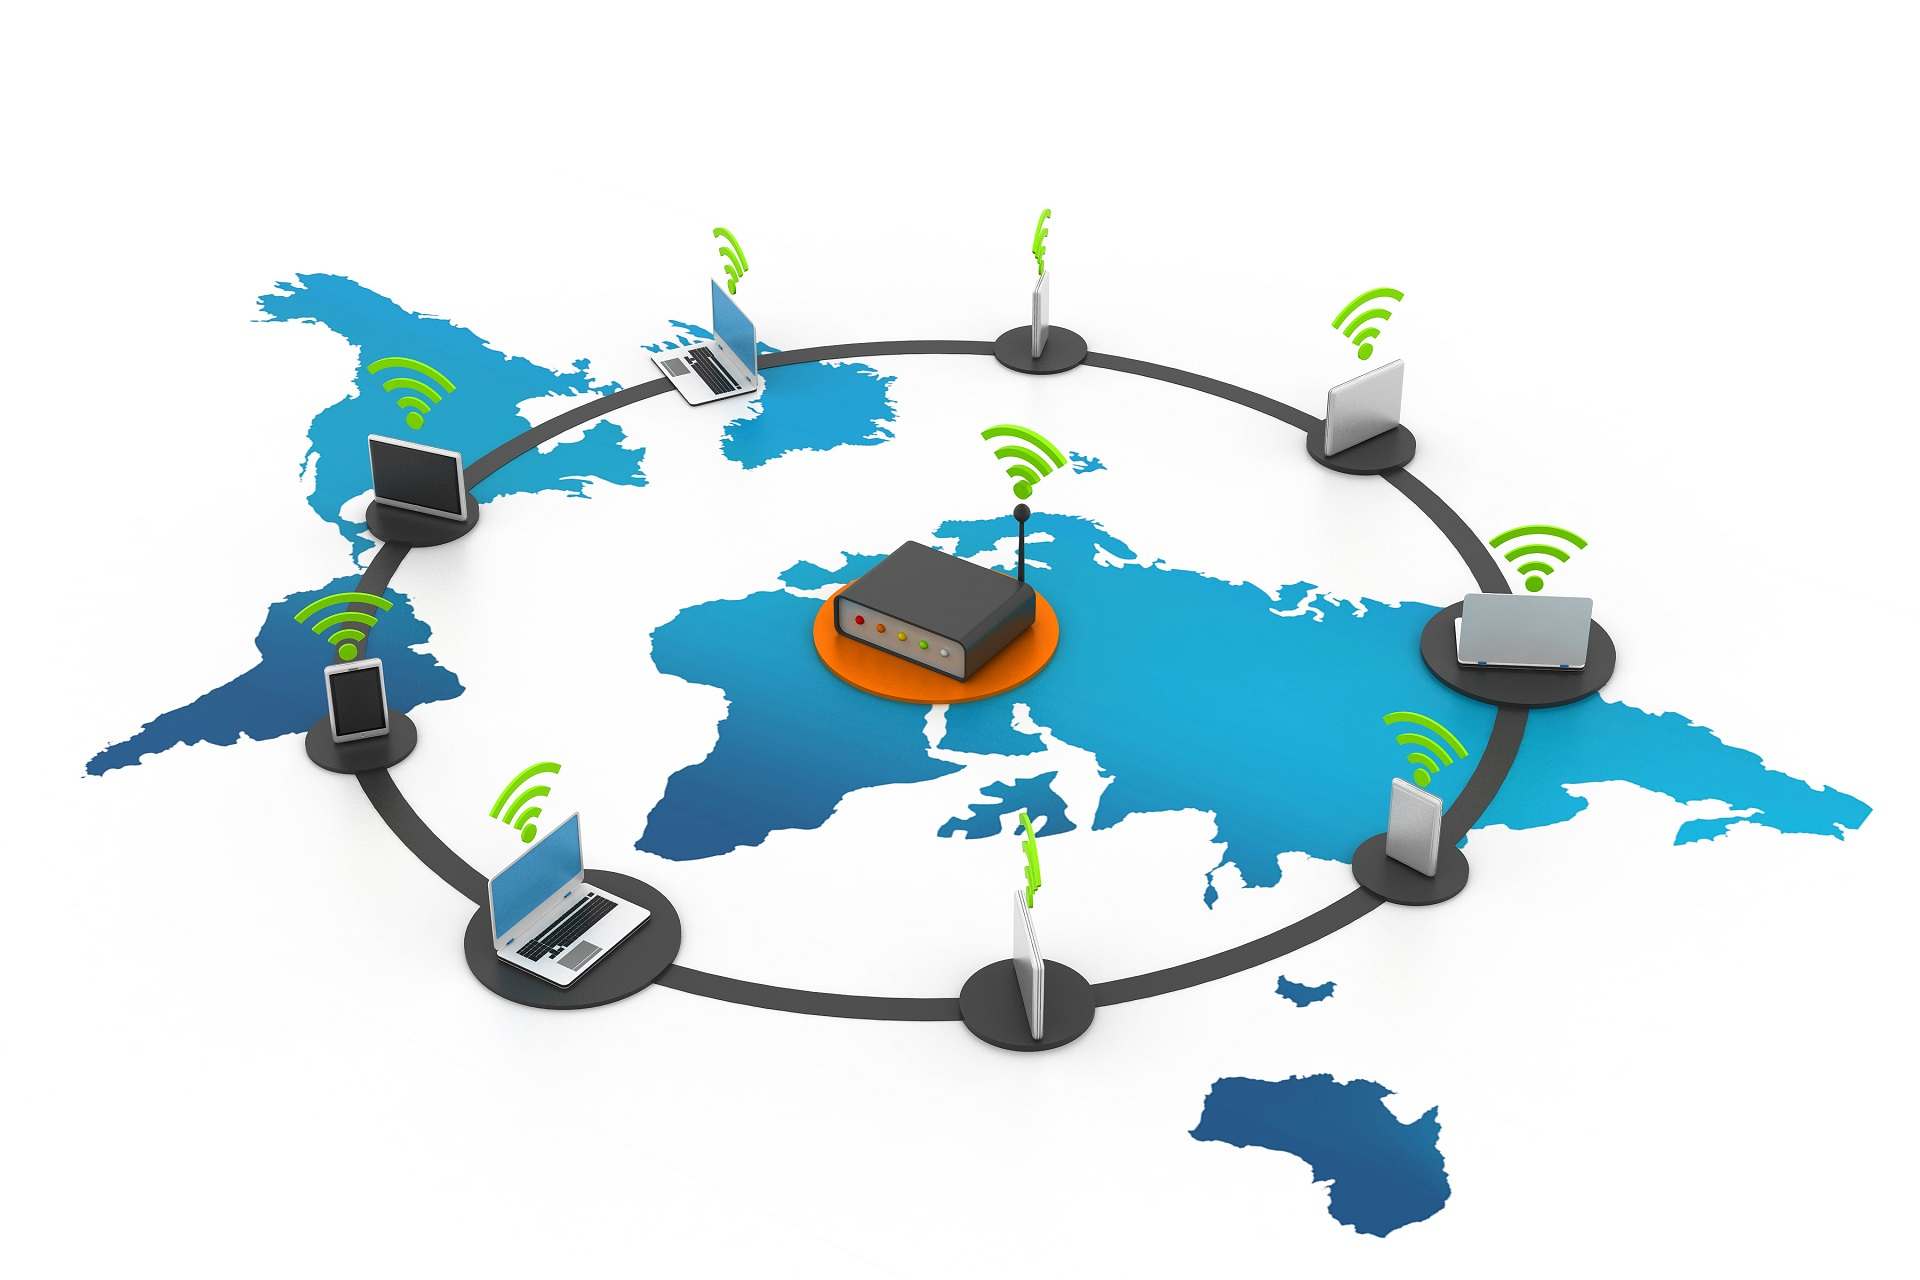 SD-WAN Router across map of the world with many different devices in a circle